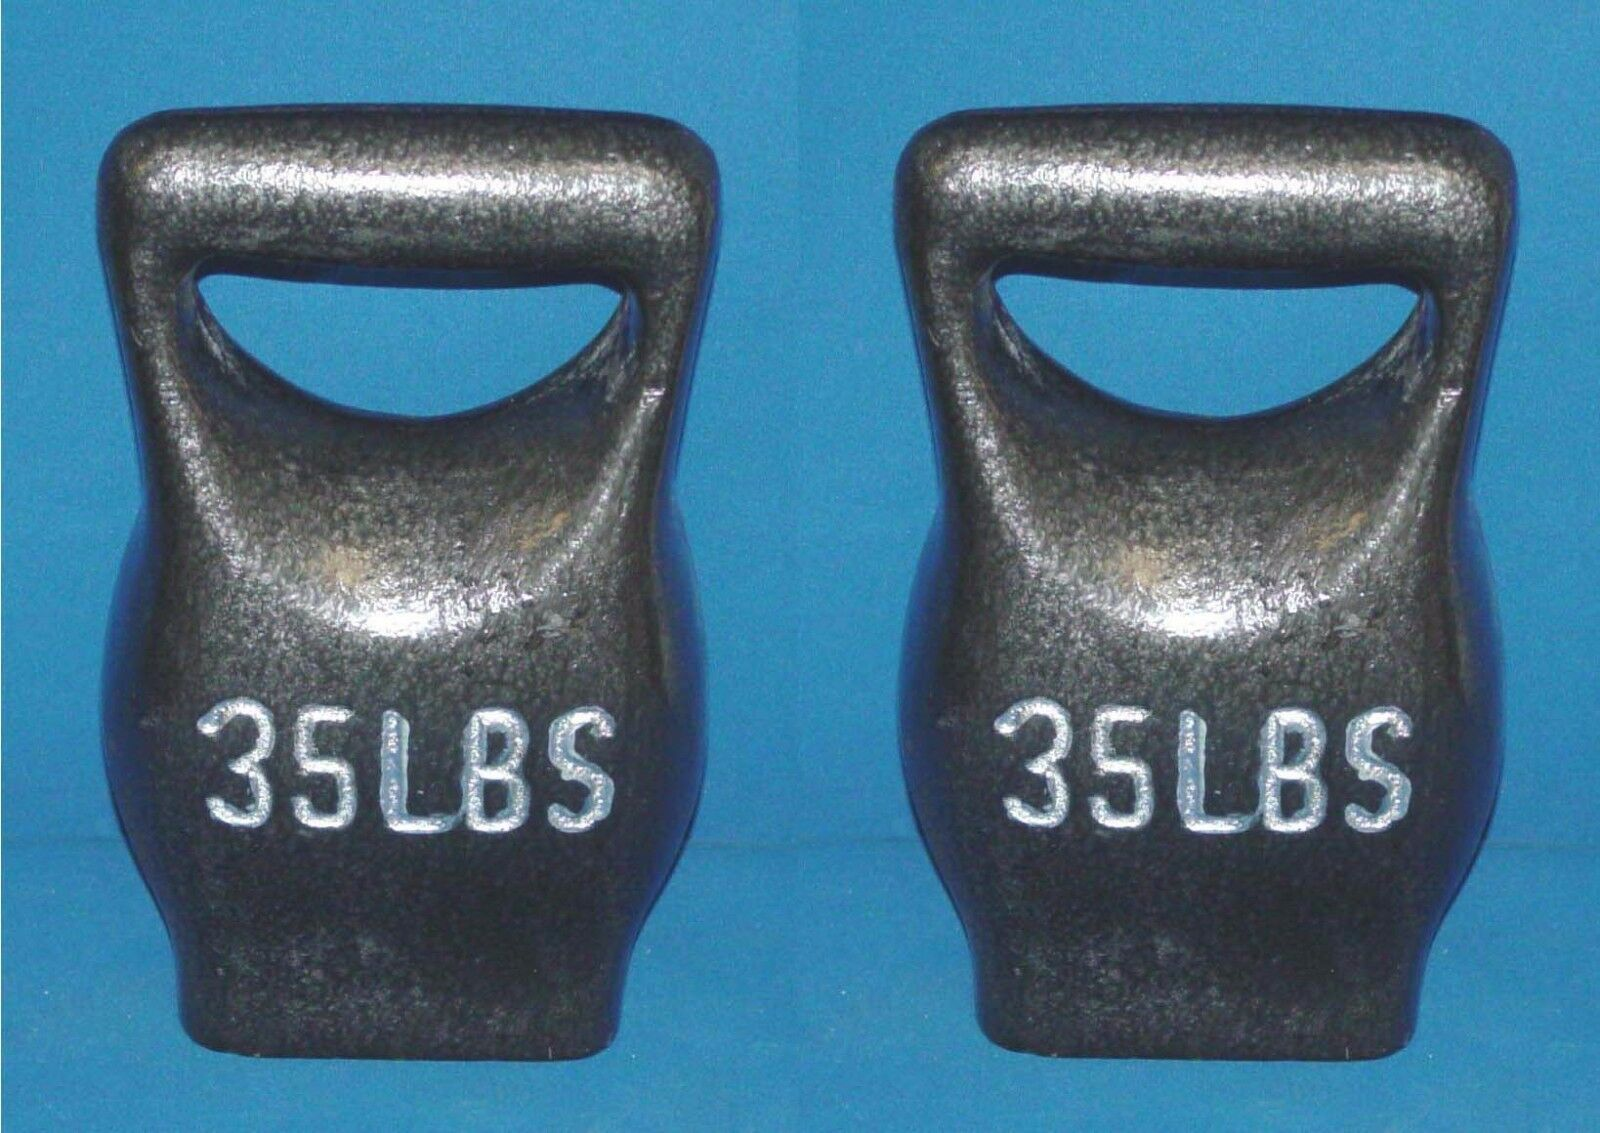 47c690918 Ader Press Kettlebell Pair- 35lbs Single Hand nfwhvs8112-Kettlebells